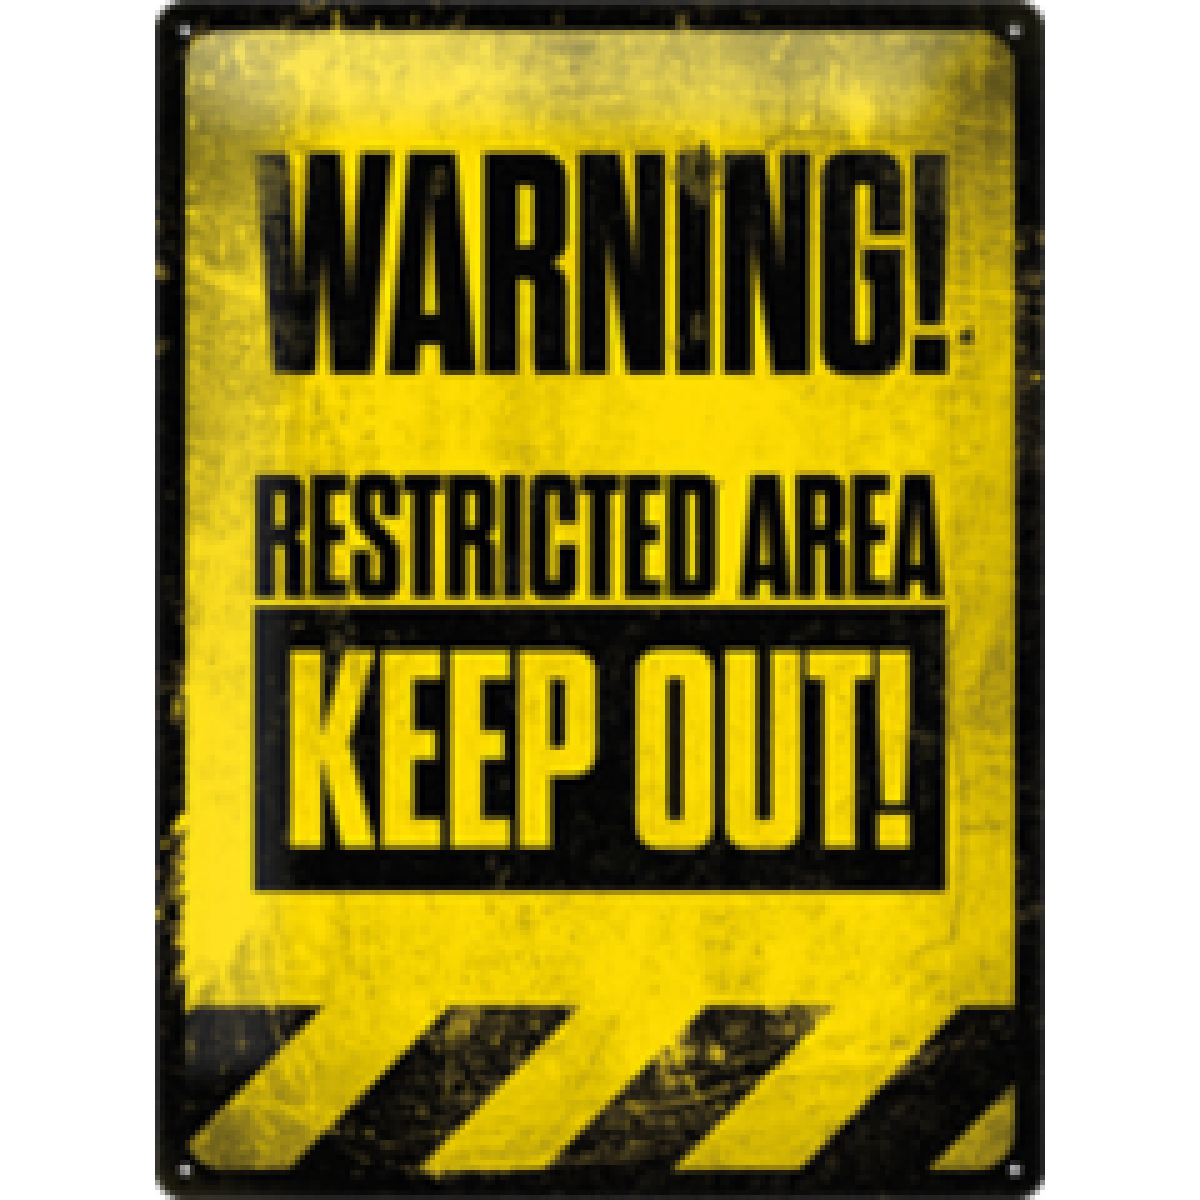 Man Cave Signs Sydney : Warning restricted area tin sign man cave signs